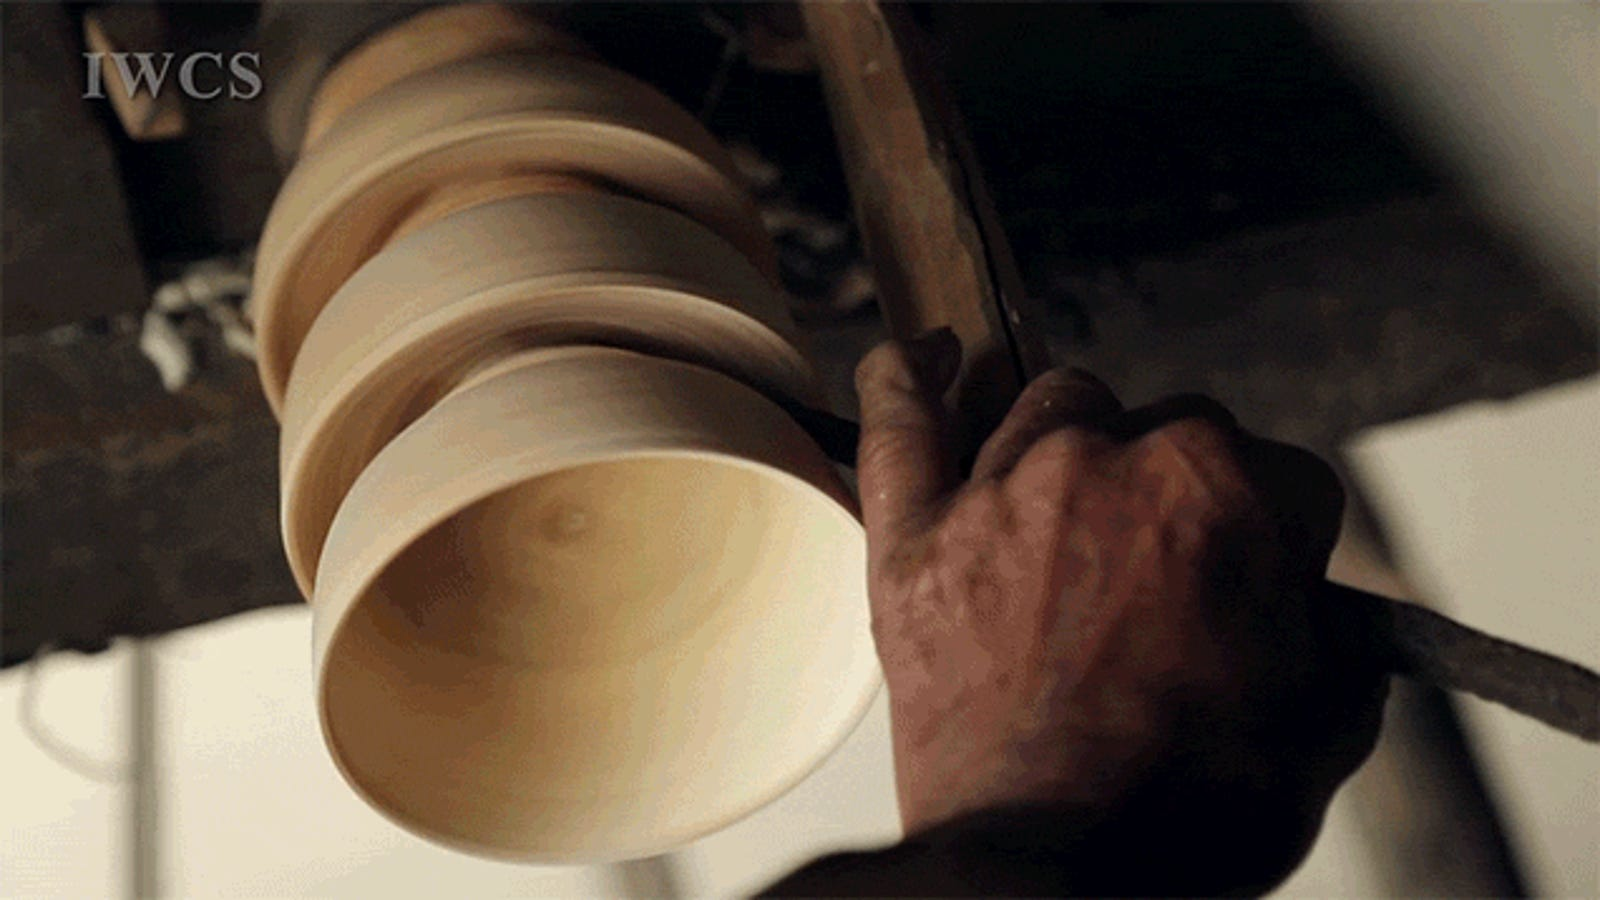 Watch a Bowl Get Carved from Wood Using Traditional Methods